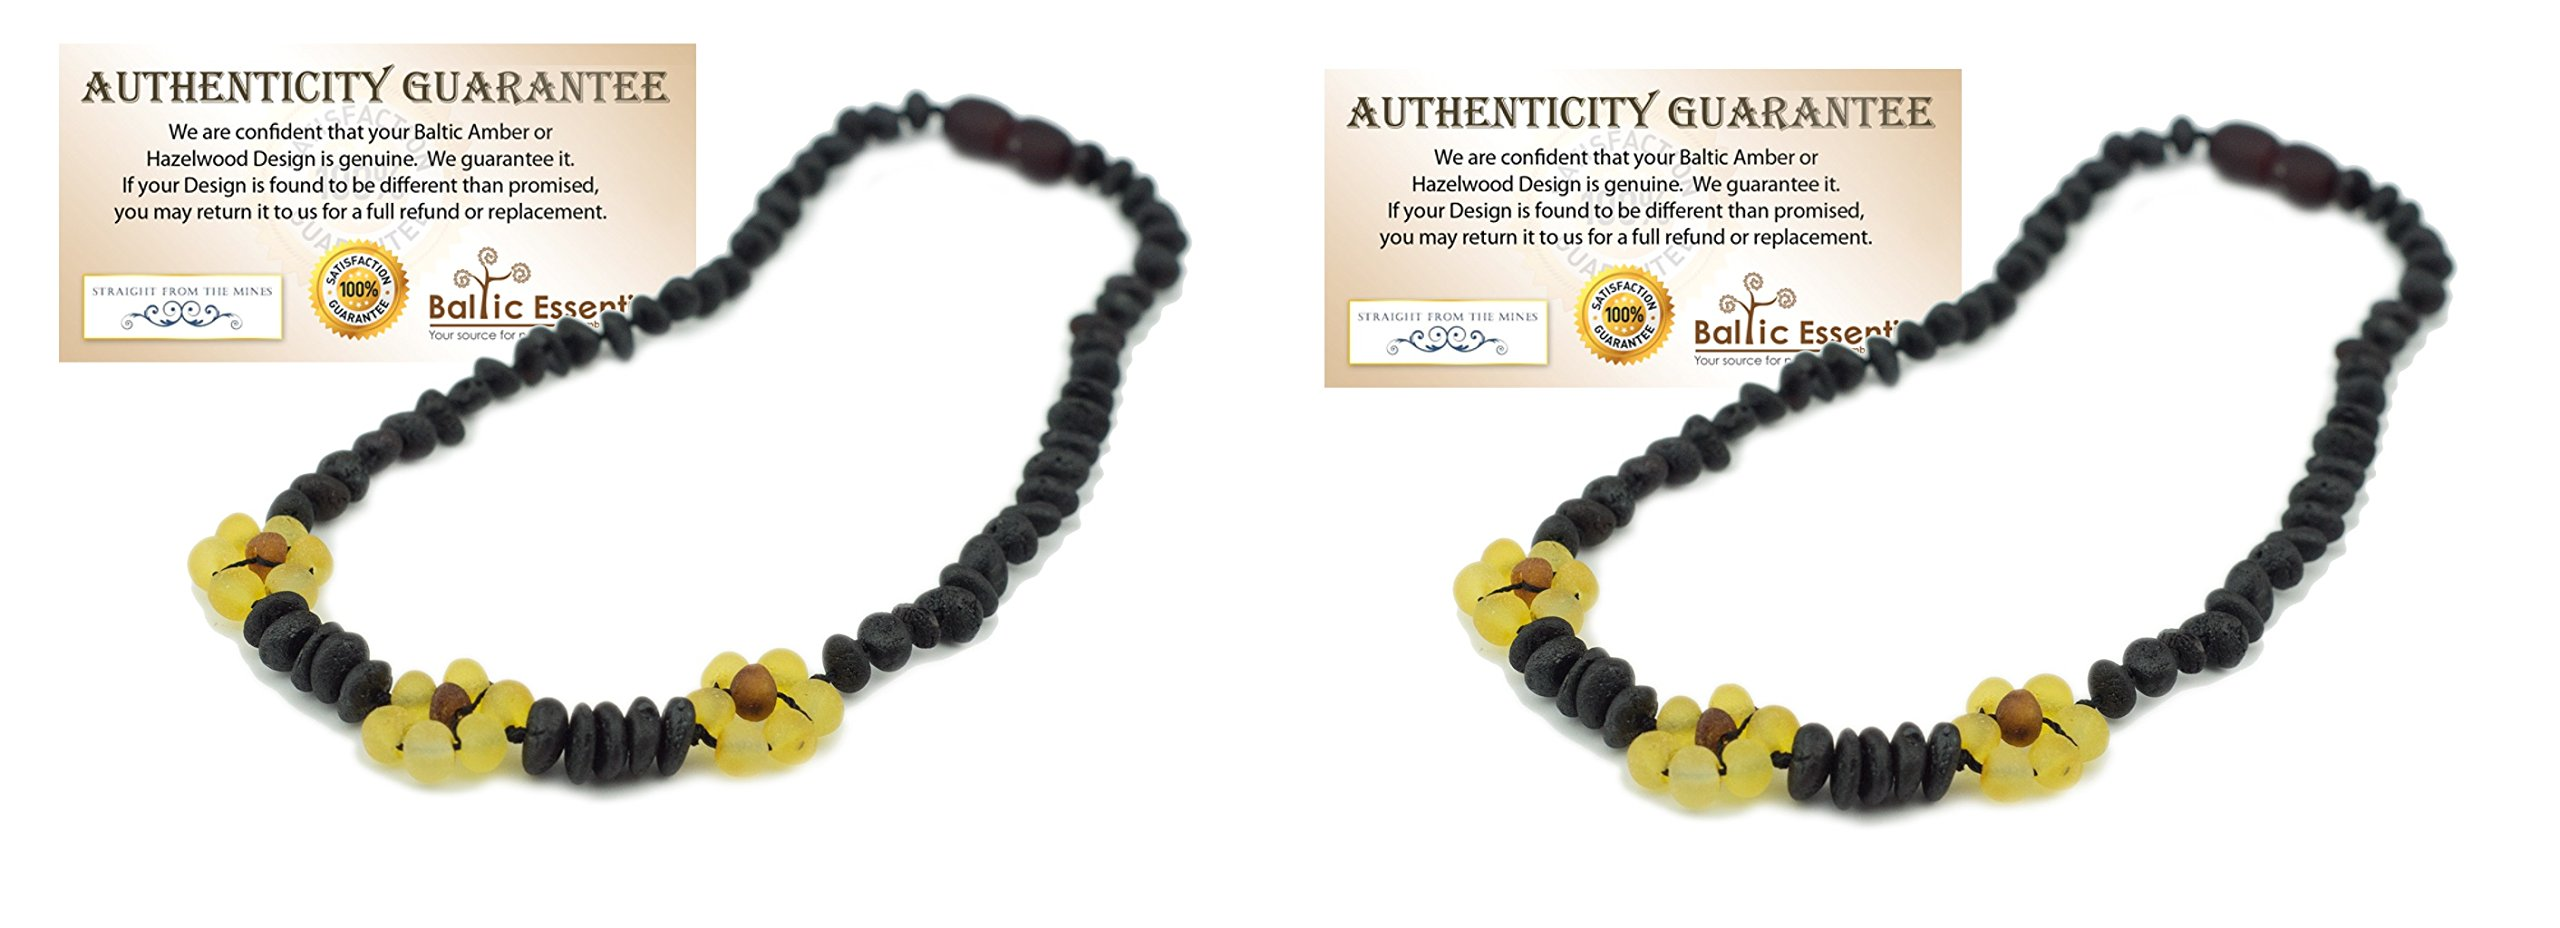 TWO Pack - Baltic Amber 12.5 Inch Teething Necklace for Babies (Black Cherry) Raw Unpolished - Baby, Infant, and Toddler. Drooling & Teething Pain (2 Pack) by Baltic Essentials